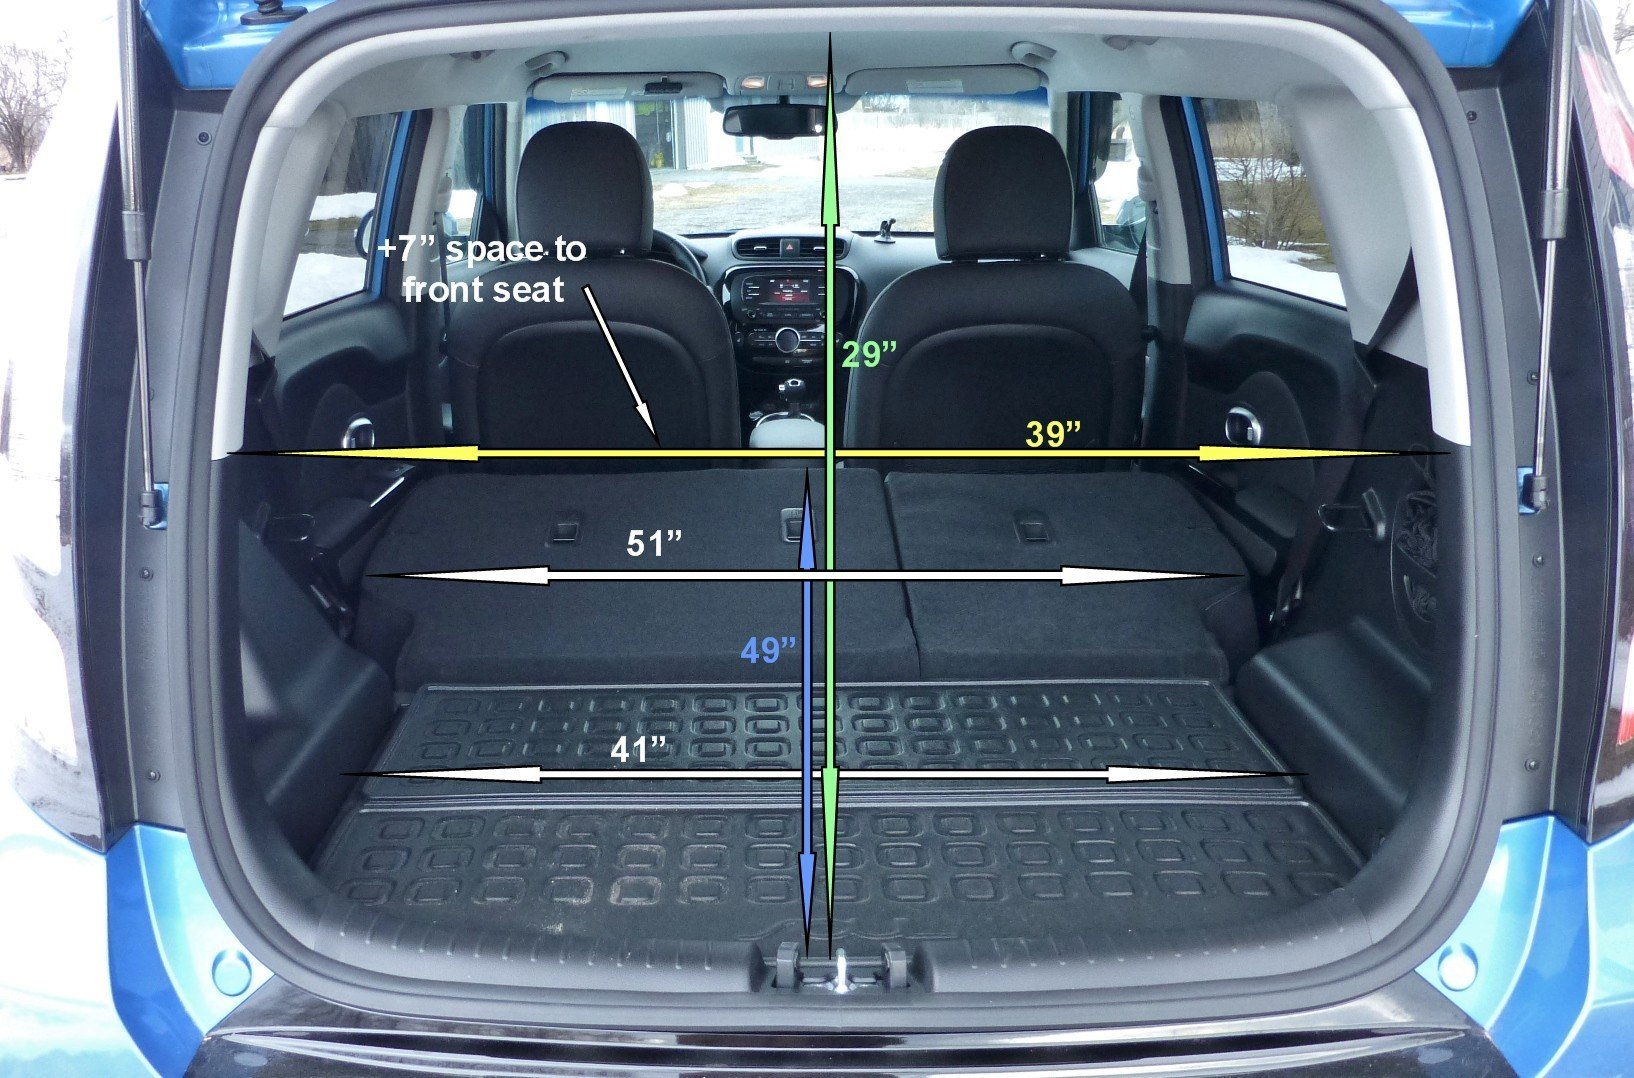 What Size Tv Can You Transport In 2019 Soul Kia Soul Forums Kia Soul Owners